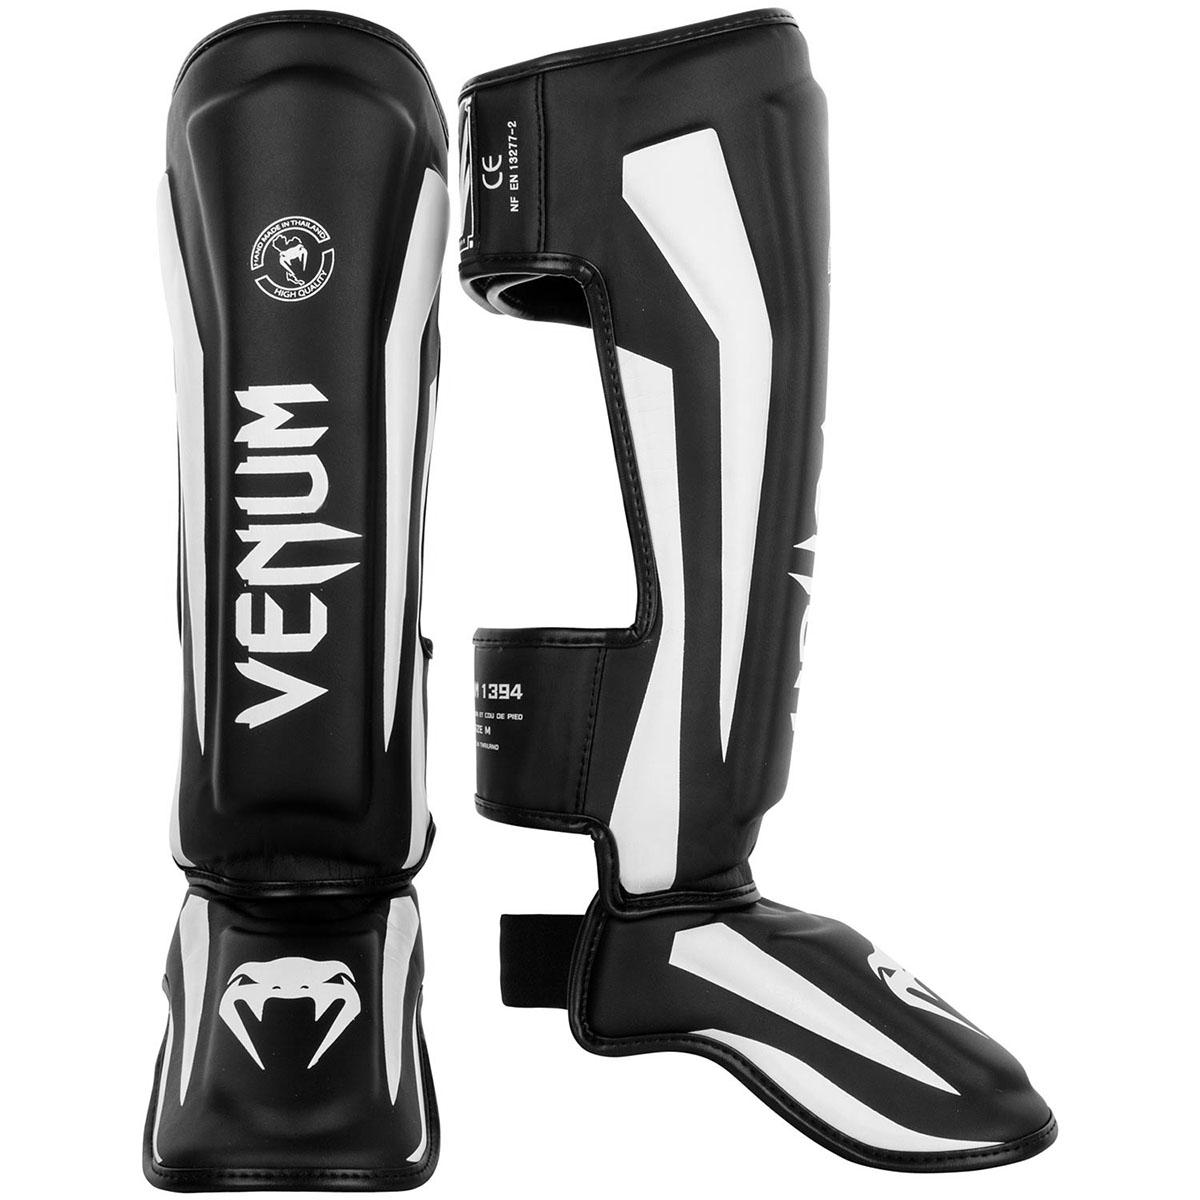 Venum Elite Lightweight Standup Protective MMA Shin Guards - Black/White